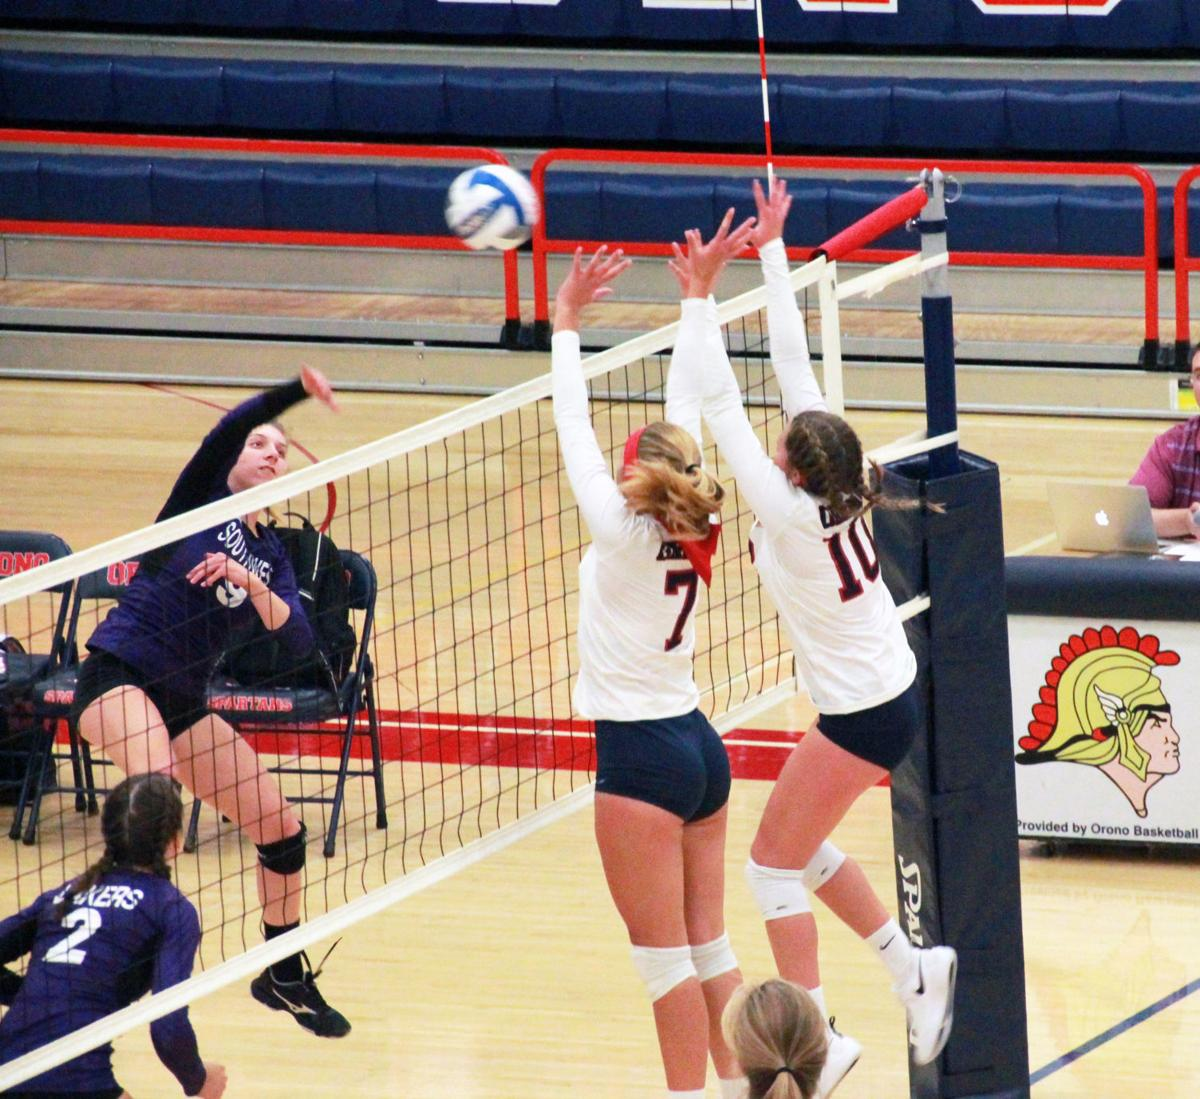 Orono volleyball 2